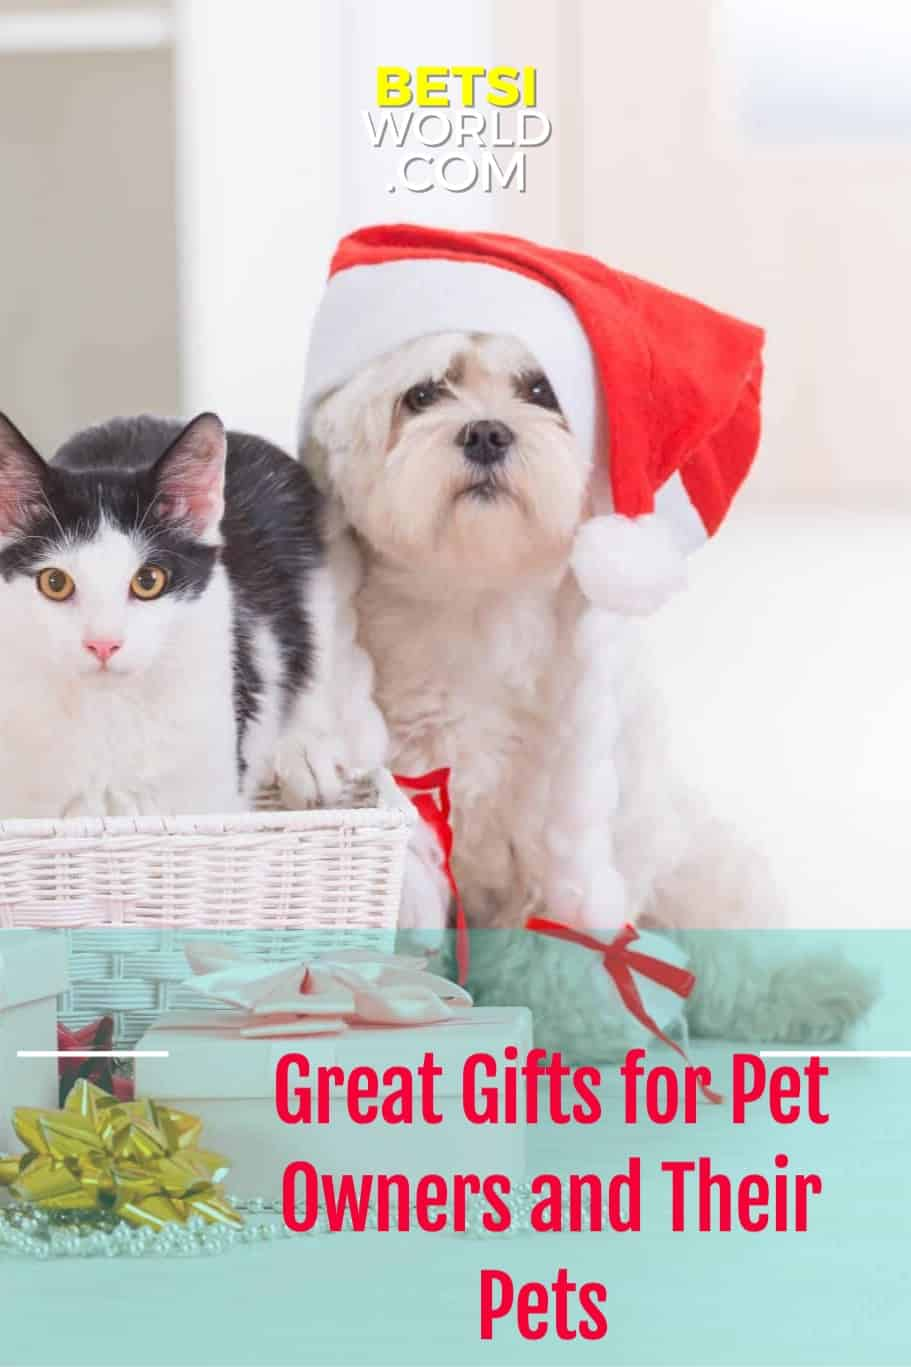 White and black cat and white dog with red and white santa hat. Great gifts for pet owners.